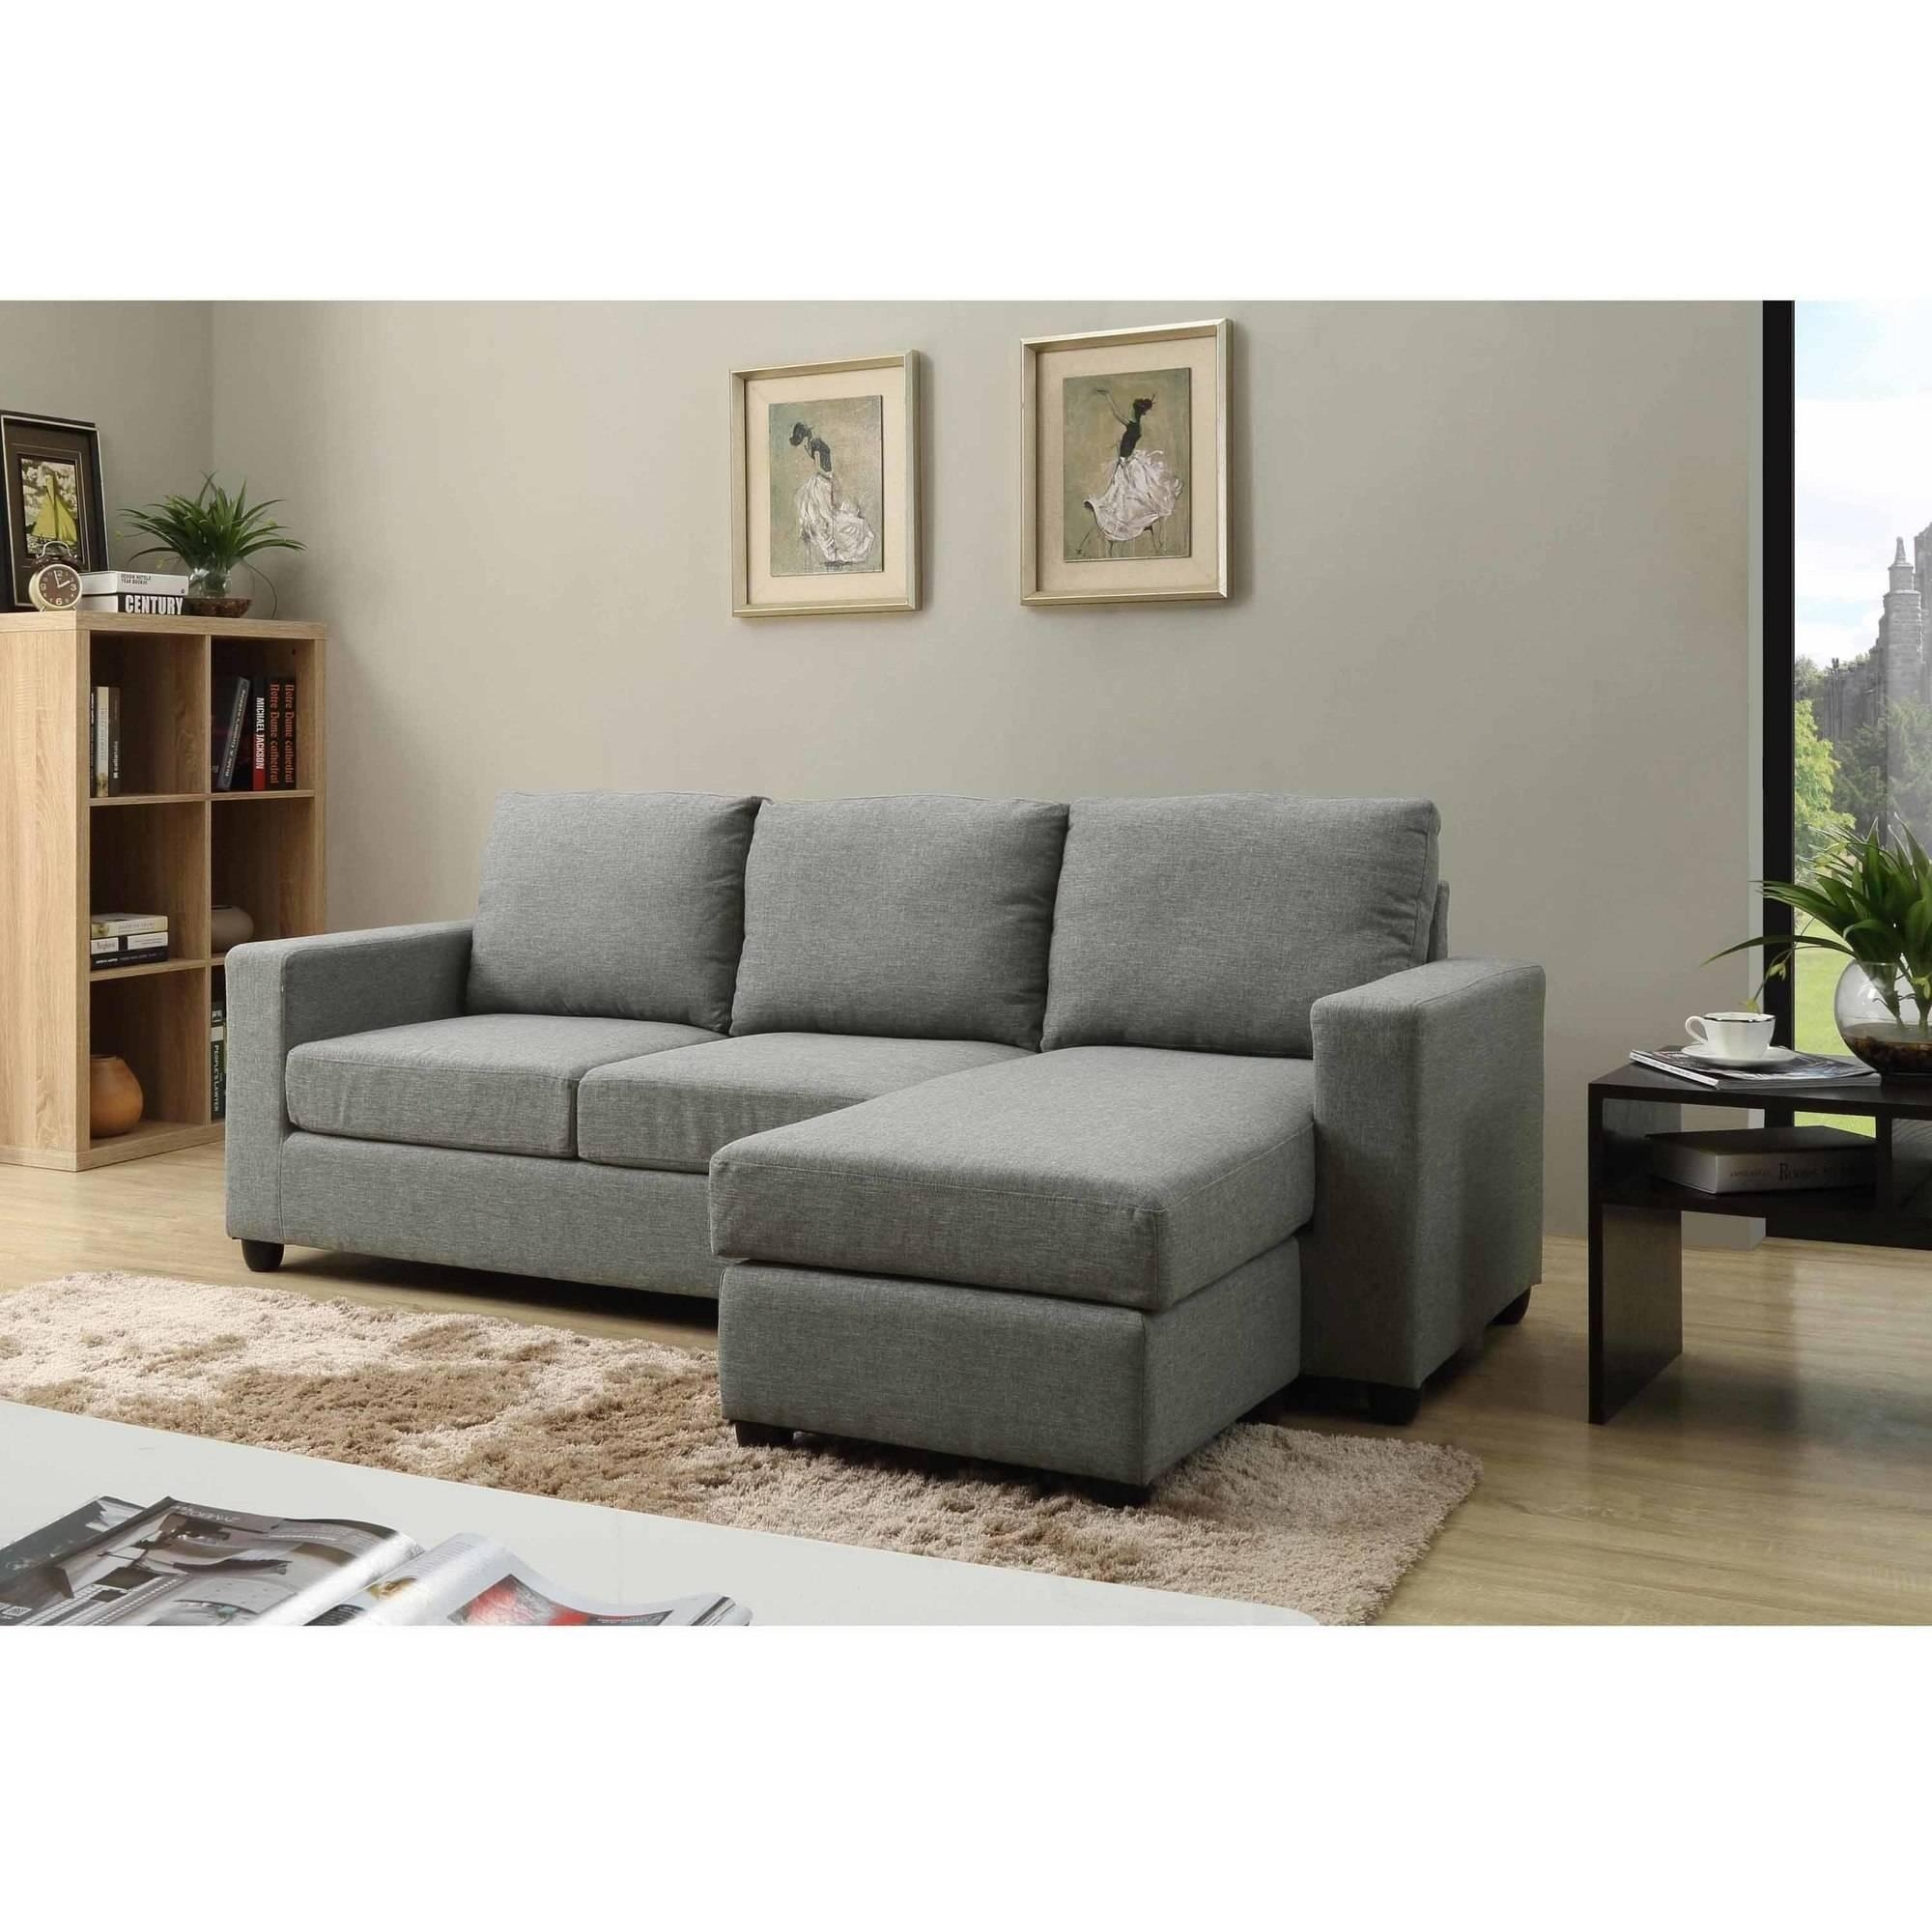 Nathaniel Home Alexandra Small Space Convertible Sectional intended for Convertible Sectional